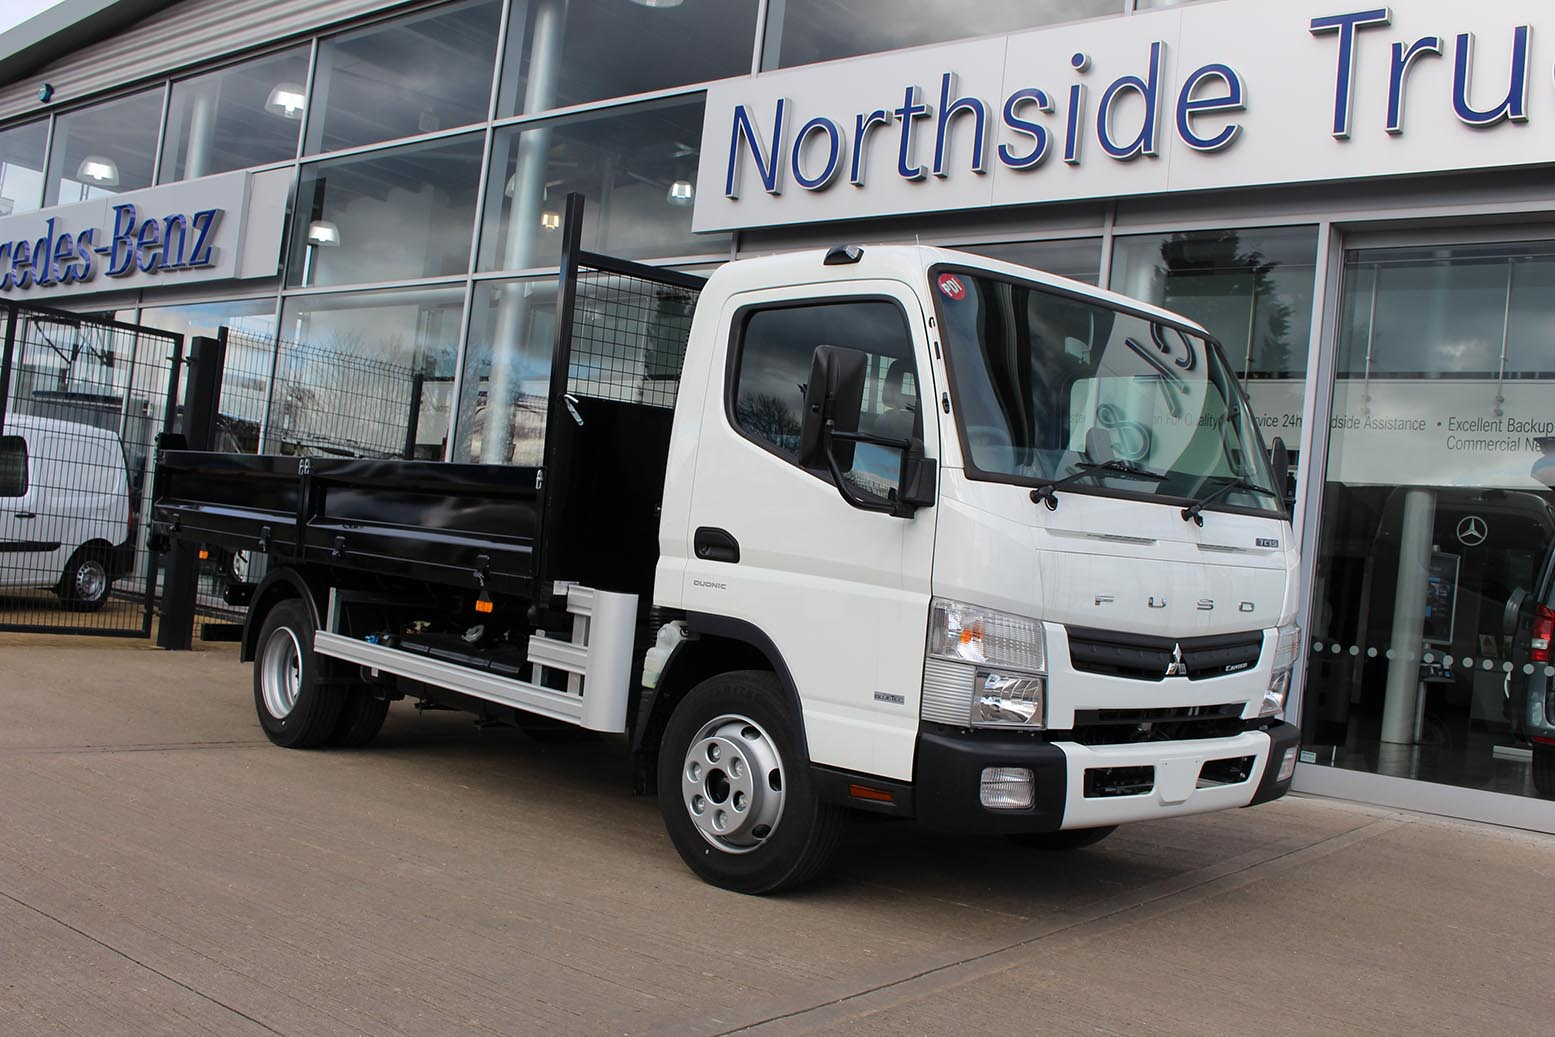 incredible photos of mercedes benz northside truck and